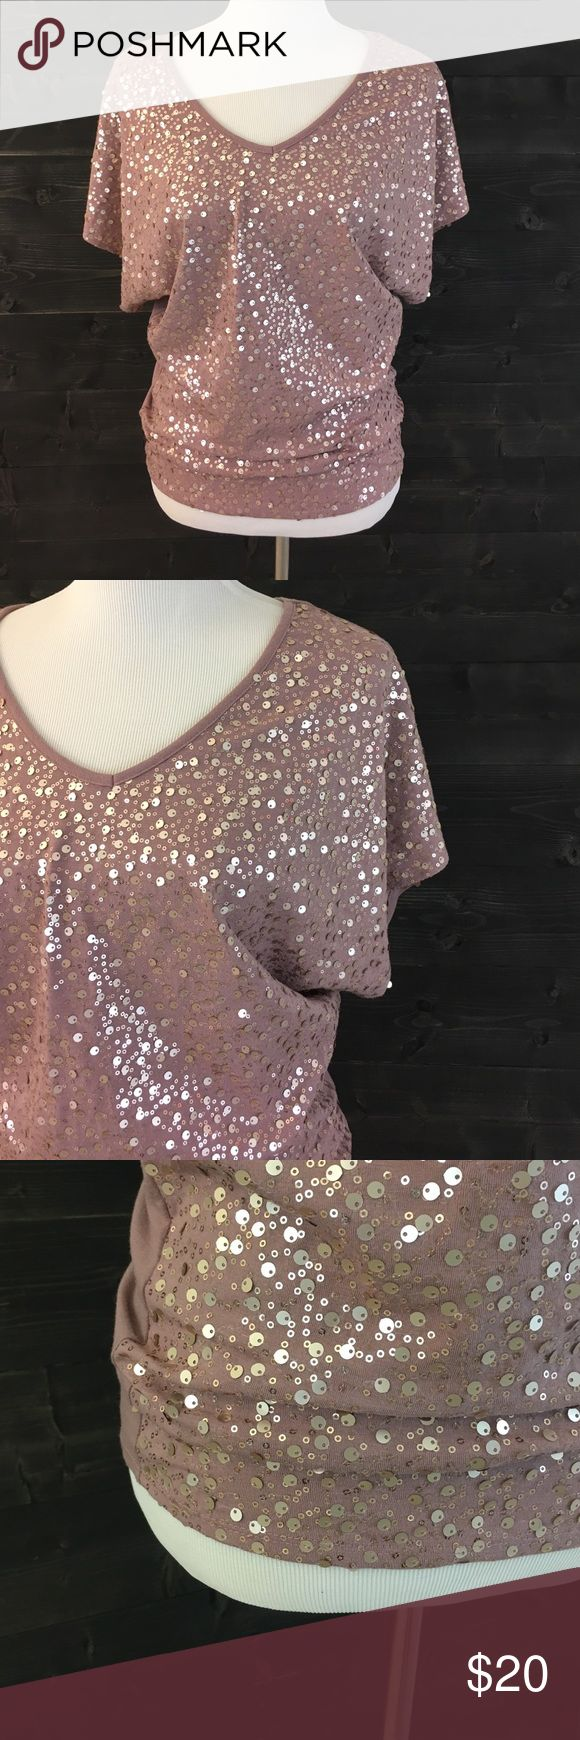 HP Studio Y Sequin Dolman V Neck Top Studio Y knocked this one out of the park! This shirt is a true eye catcher! The color alone is so elegant and perfect to dress up or like I did with a Denim mini skirt. You truly cannot go wrong with this gorgeous piece! Shirt: Style Dolman - Excellent like new condition - Maurices Studio Y Tops